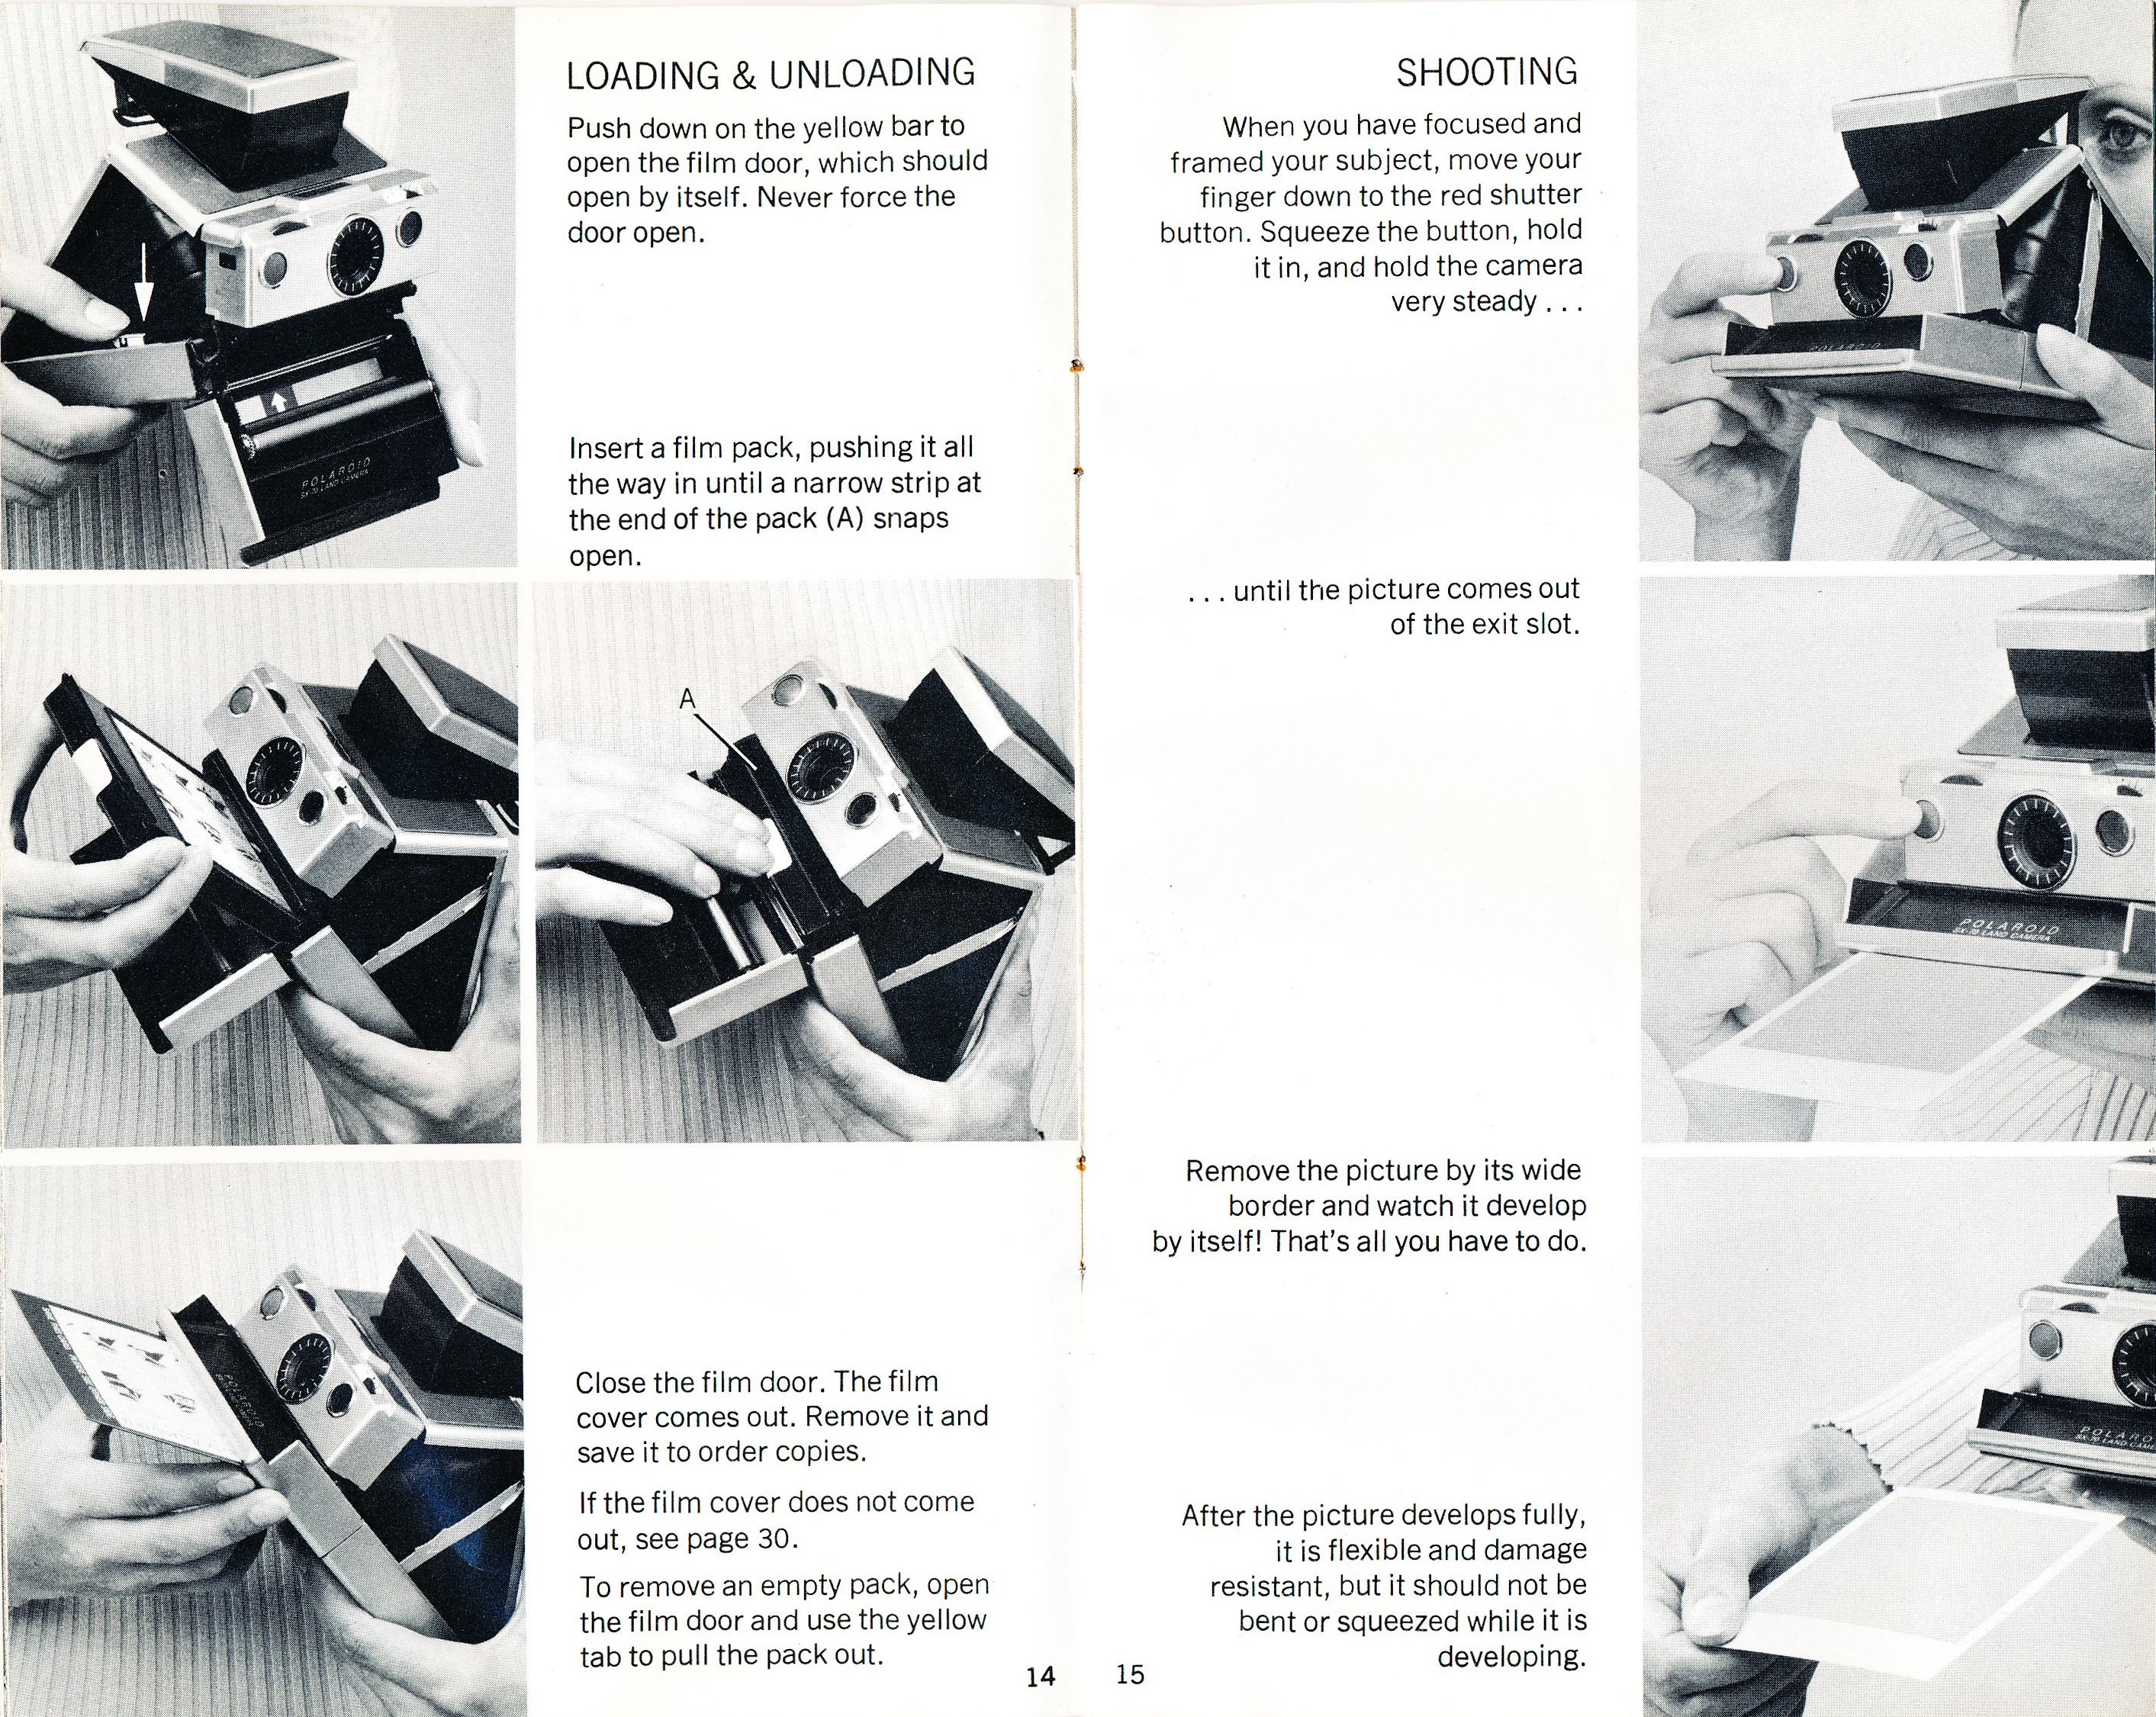 polaroid sx 70 user manual shoot film rh shoot film com polaroid sx 70 manual instrucciones polaroid sx 70 manual instrucciones